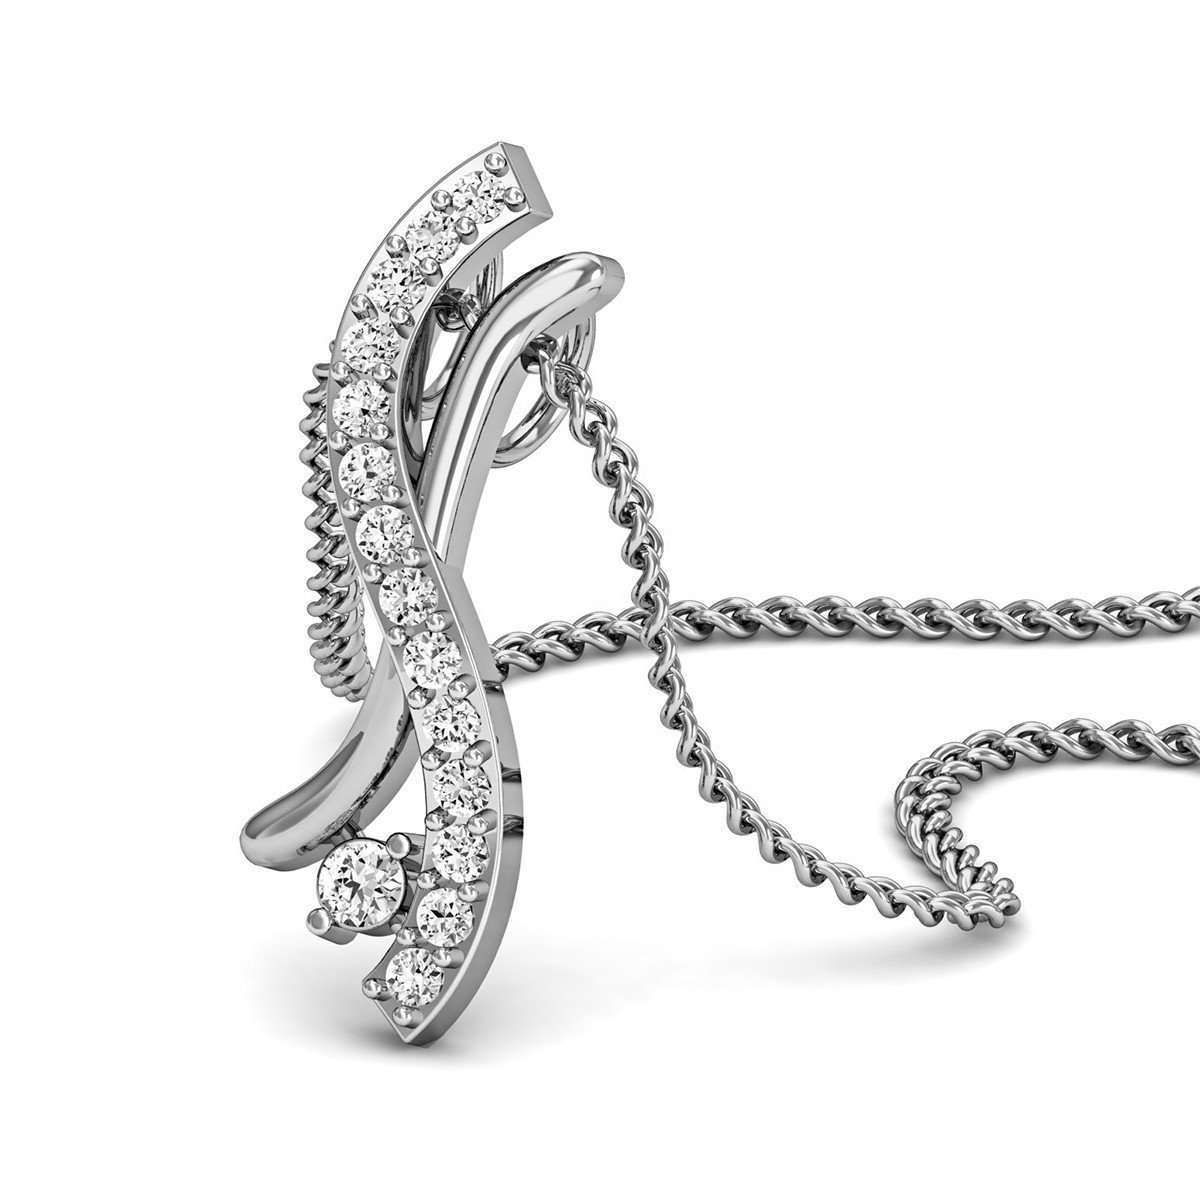 15 Round Cut Diamonds and 10kt White Gold Pave Ribbon Twirl Pendant-Diamoire Jewels-JewelStreet US